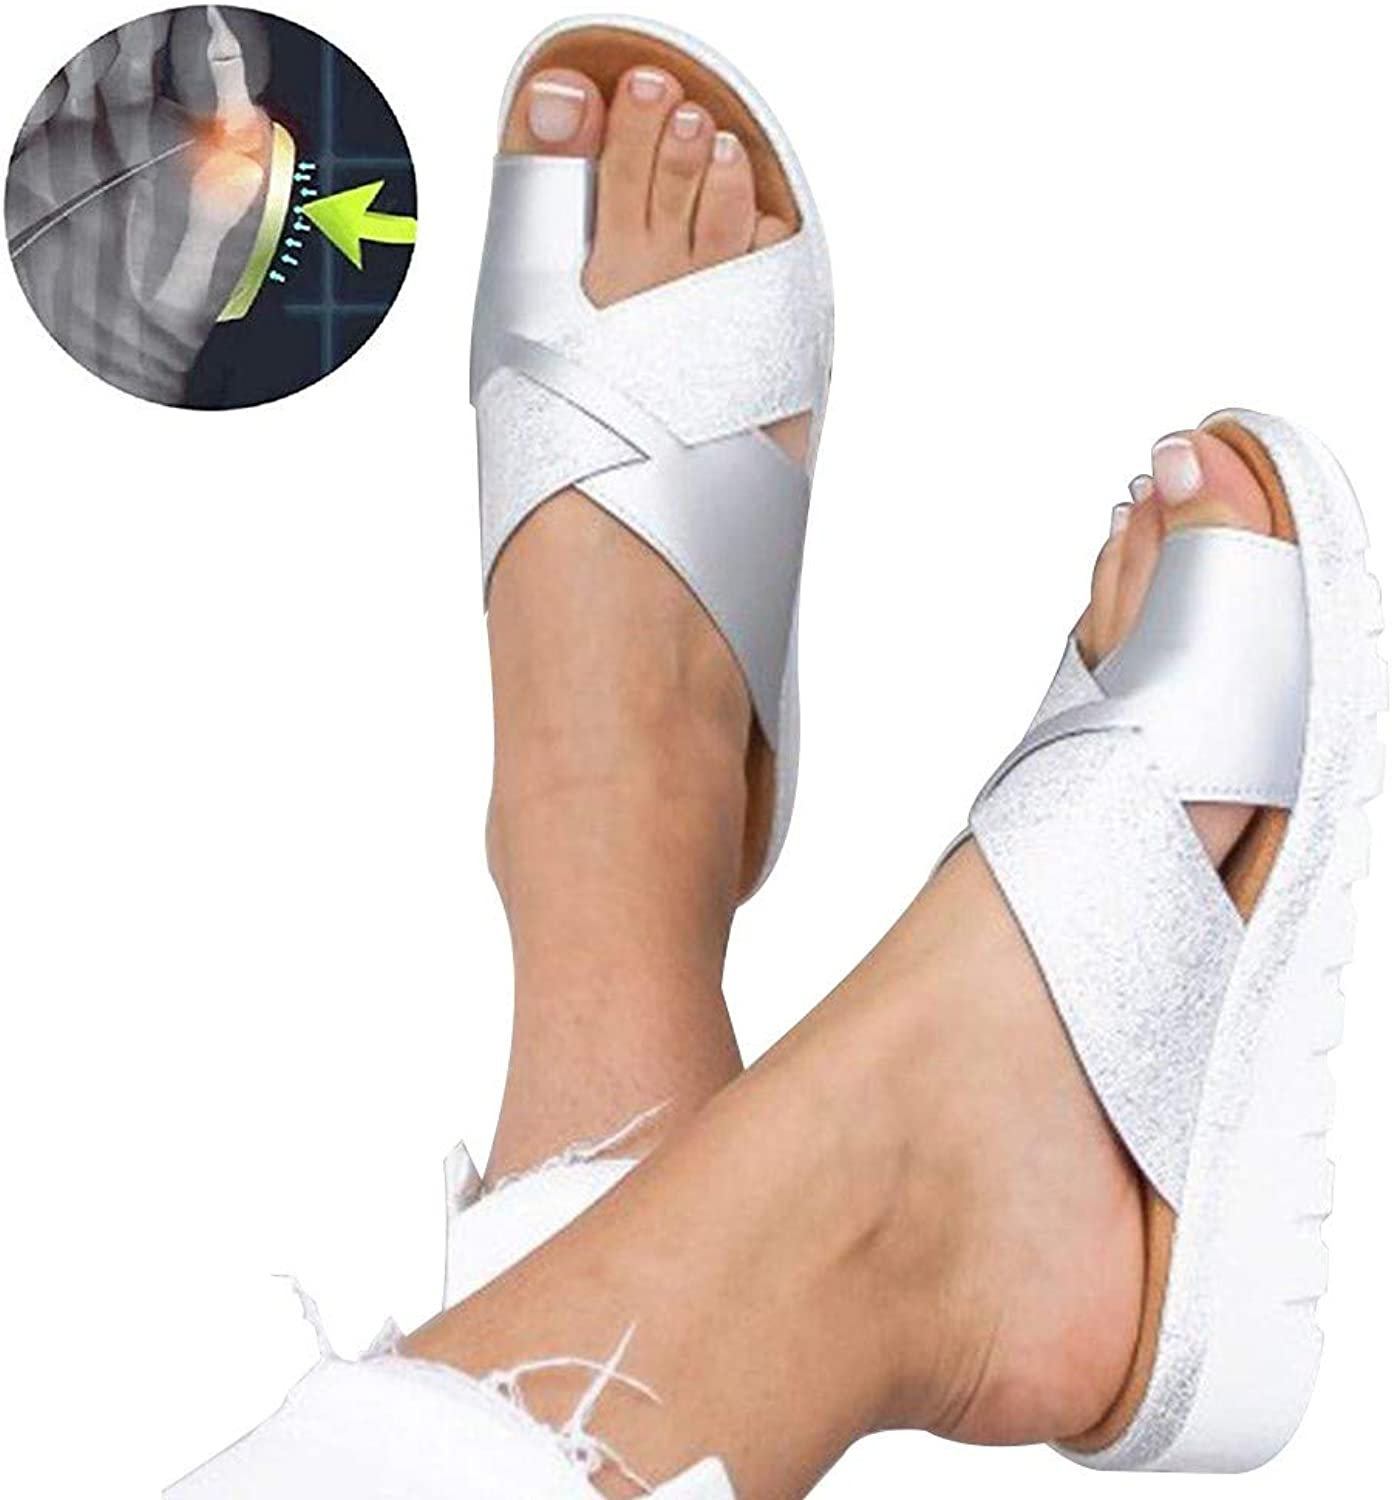 Foot Correction Sandals Summer Women shoes Flat Sole Patent Leather Slippers Non Slip Wear Resistant Comfortable Slippers for Orthopedic Big Toe Bone Correction Beach Travel Silver